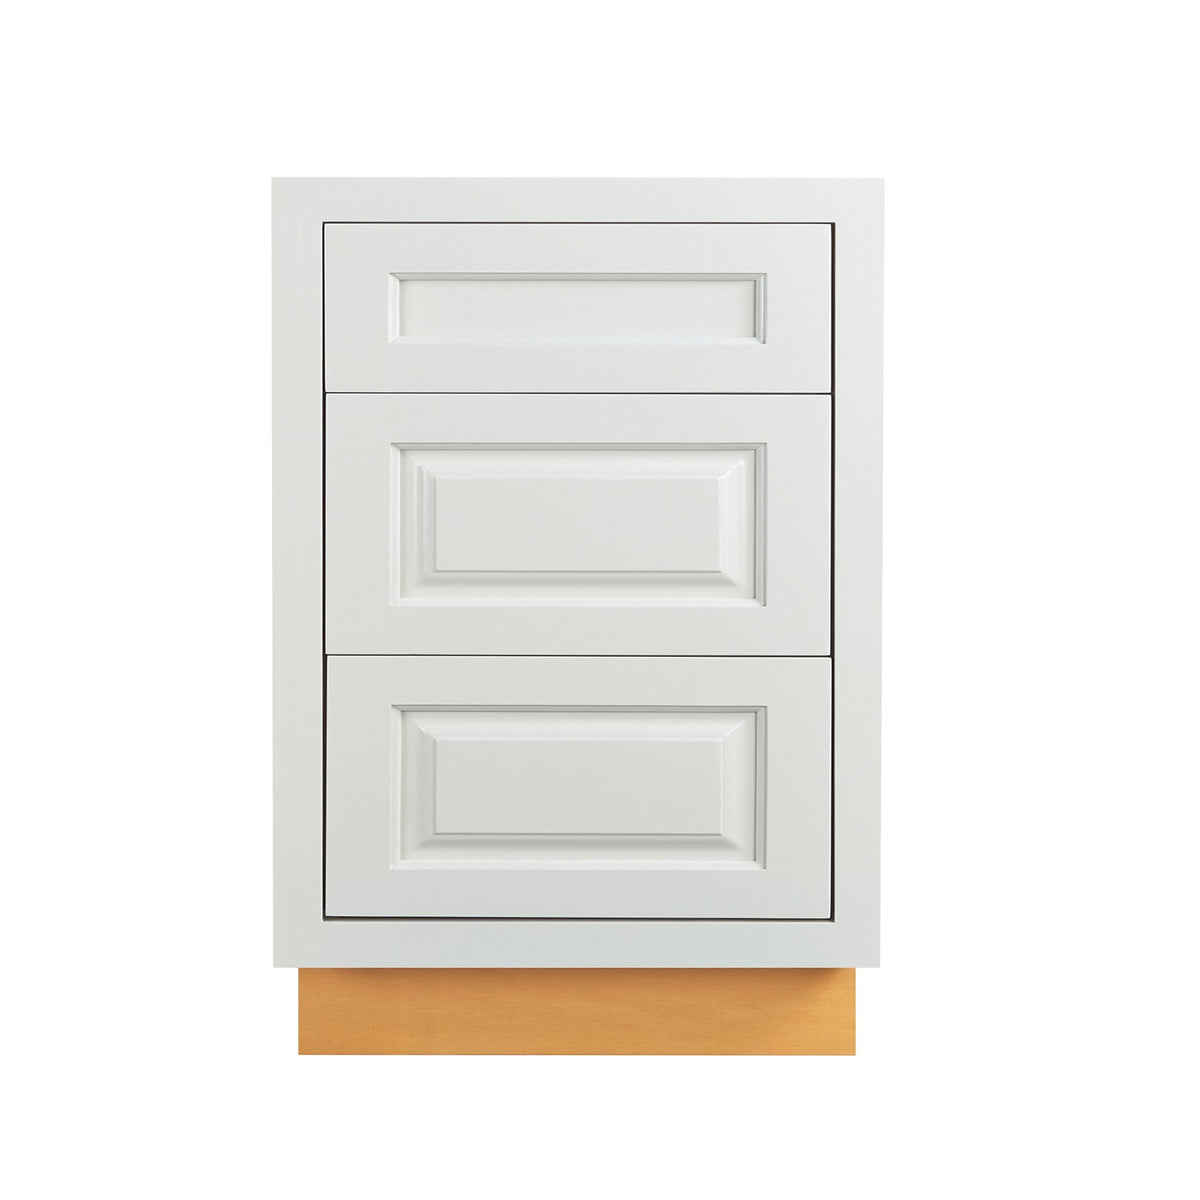 "Base Cabinet Bathroom Vanity 3 Drawer Base Vintage White Inset Raised Panel Cabinets - 21"" Deep 12"", 15"" & 18"" Wide D5VDB1821FS Inset Kitchen Cabinets"